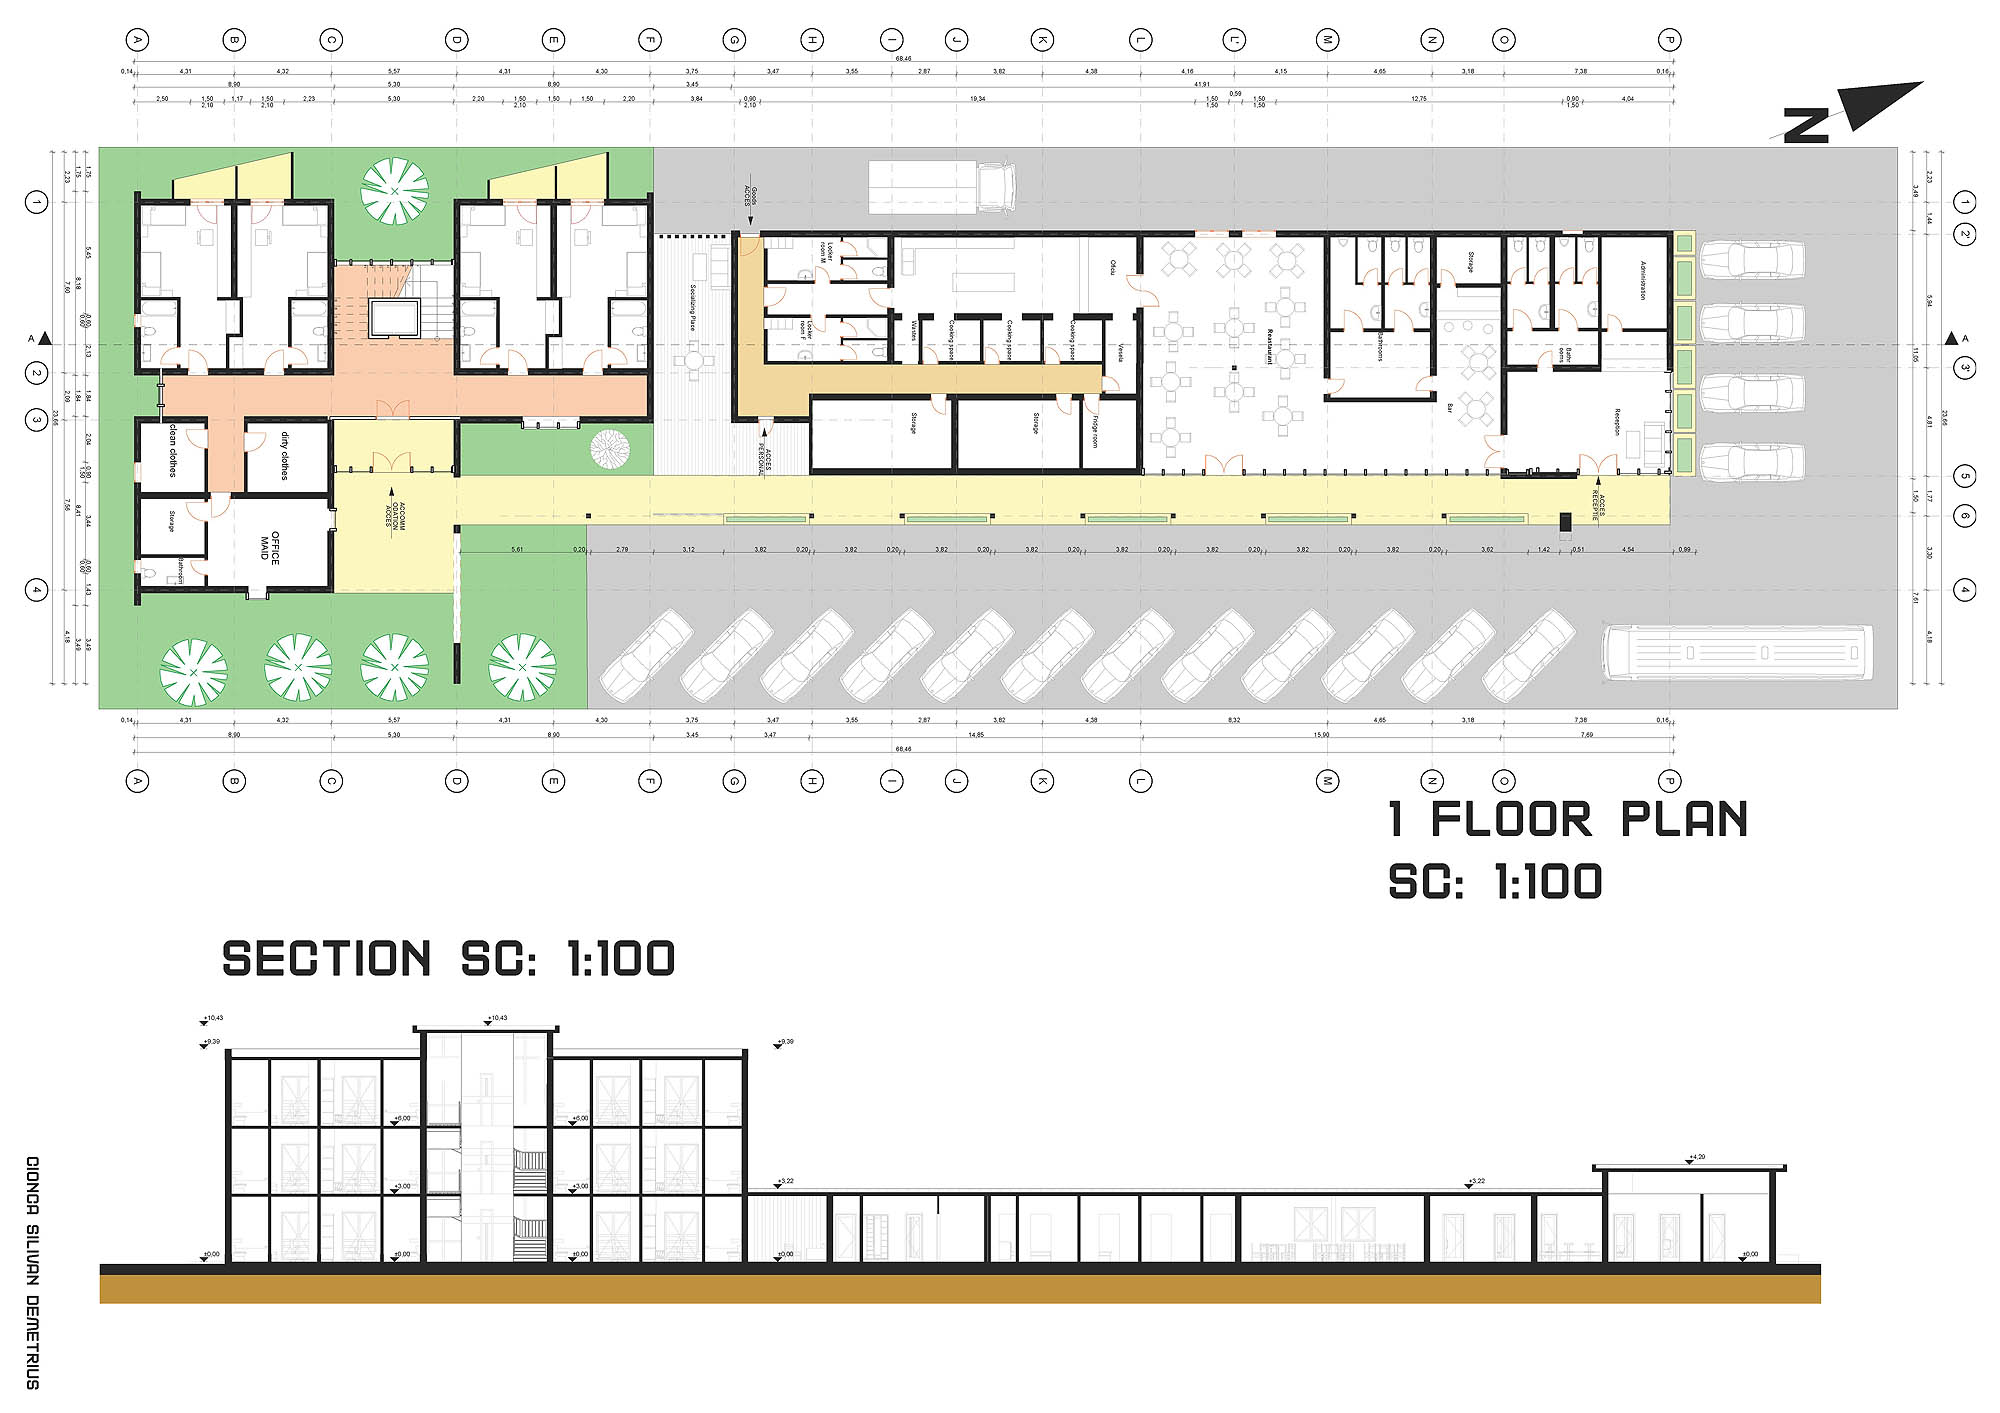 Pension Project Archicad Concept Architecture Design floor plan functions section